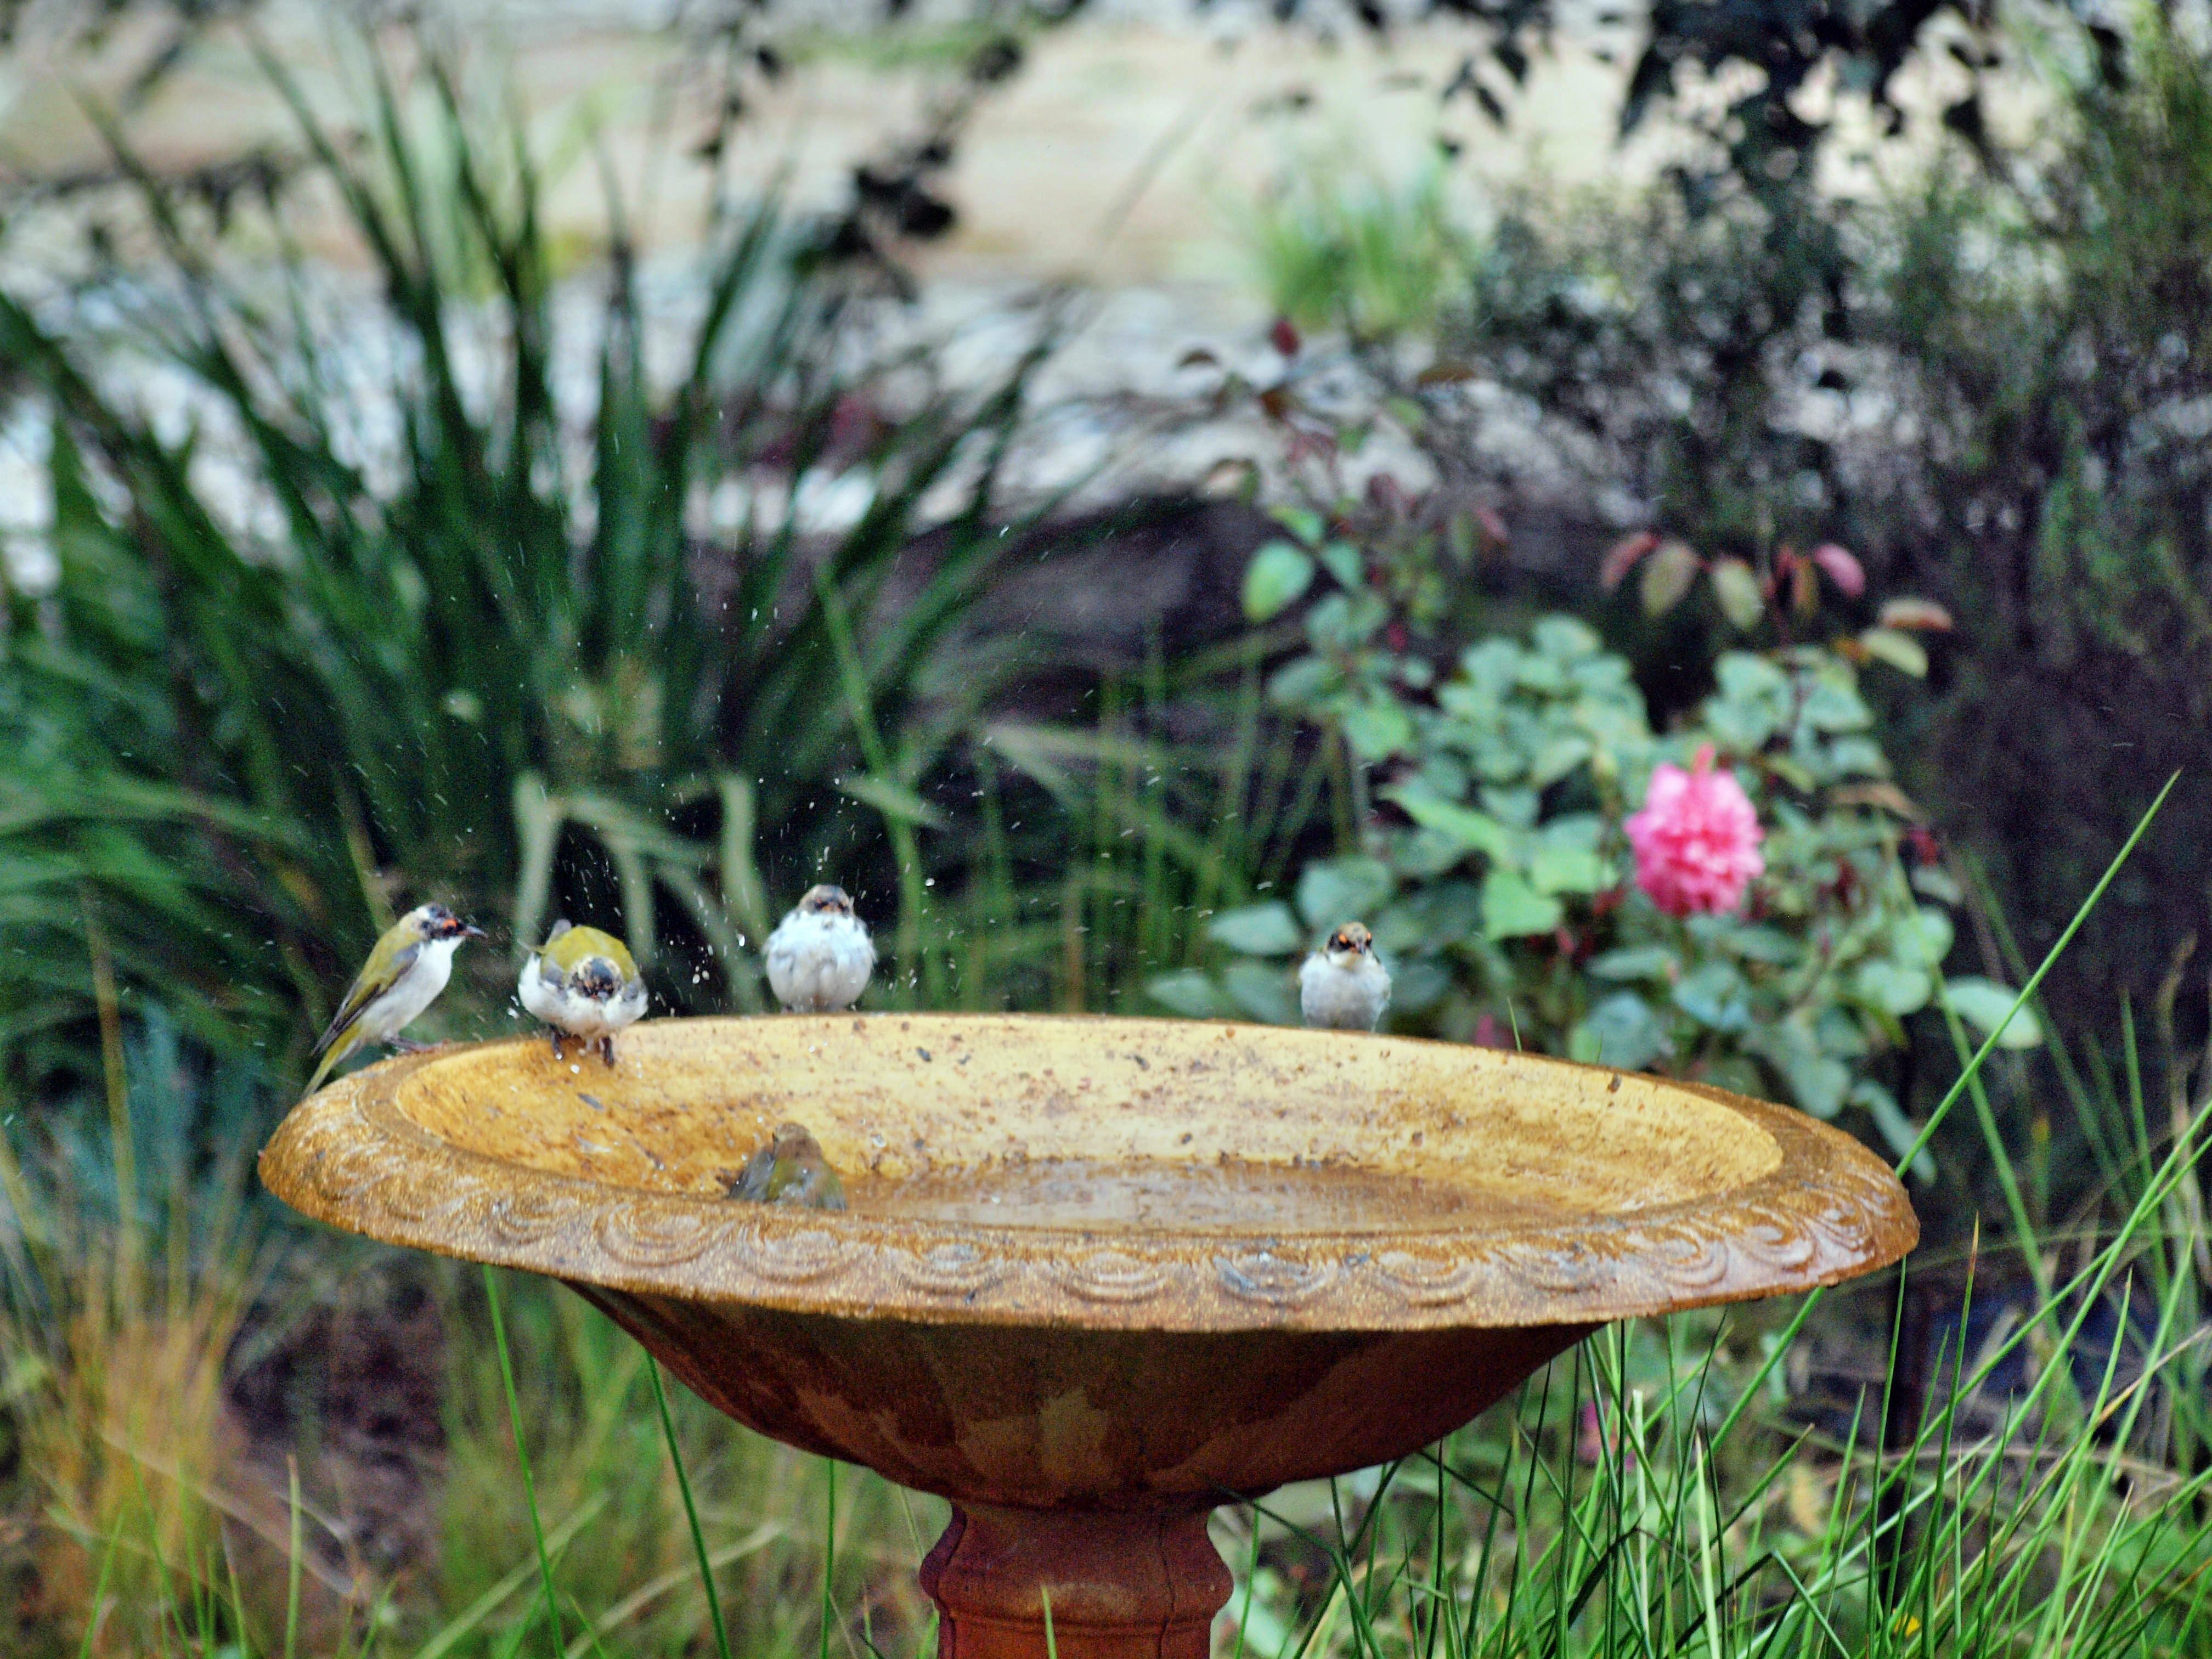 Bird-bath-38.jpeg